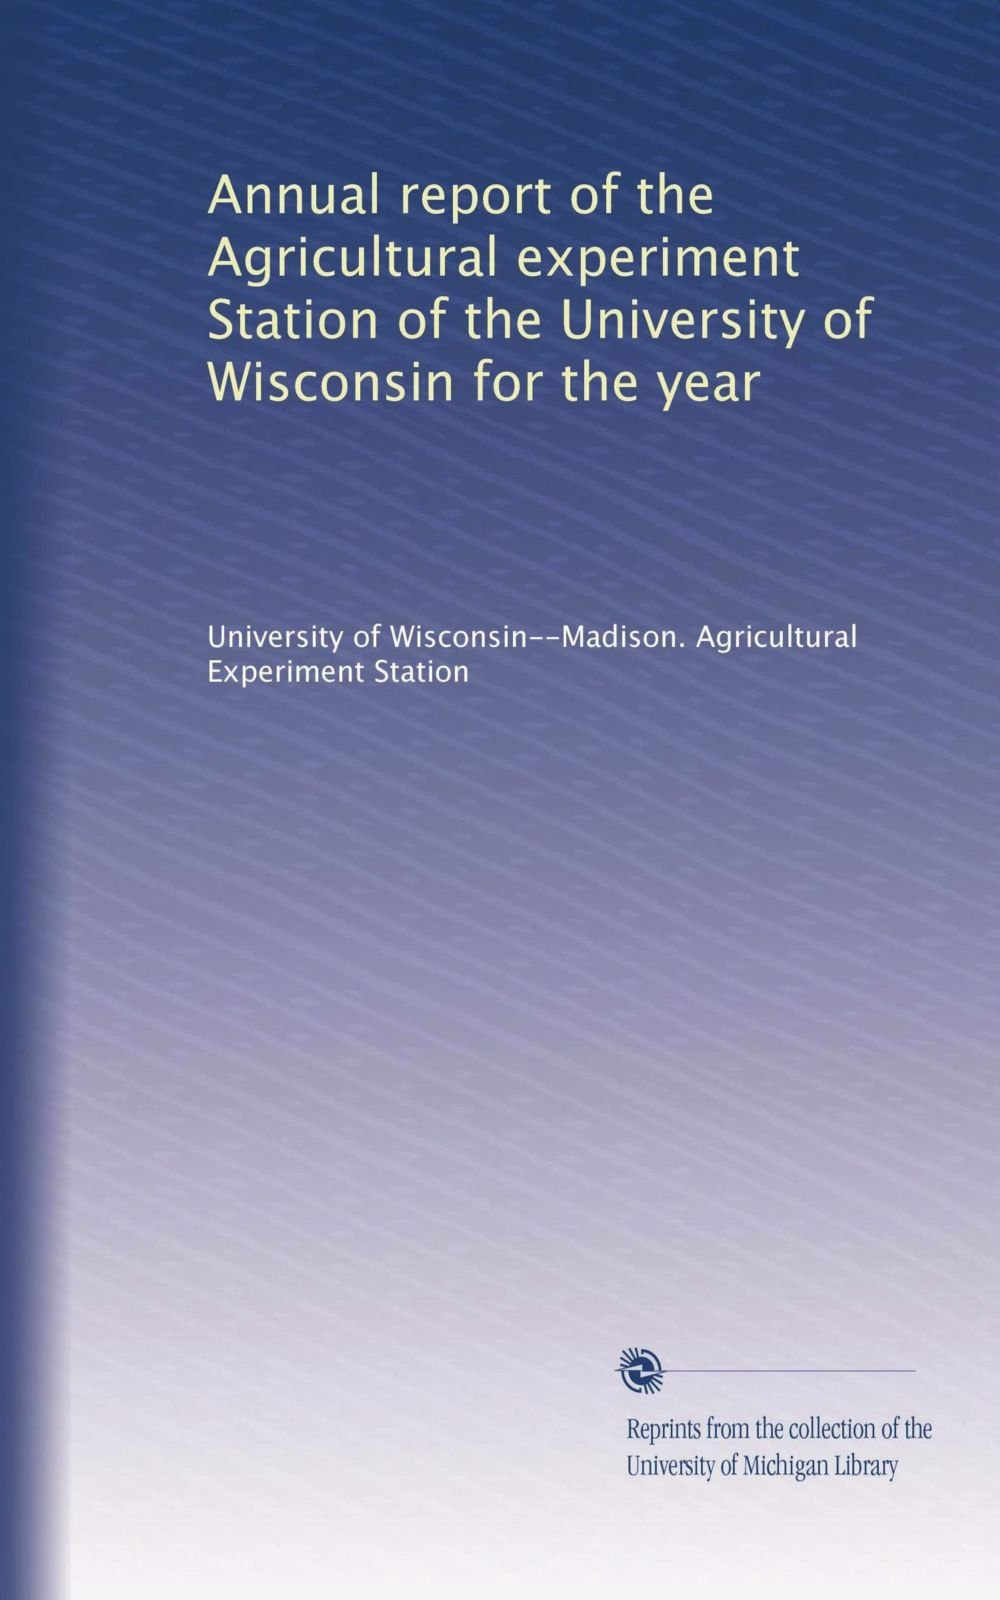 Read Online Annual report of the Agricultural experiment Station of the University of Wisconsin for the year (Volume 6) ebook